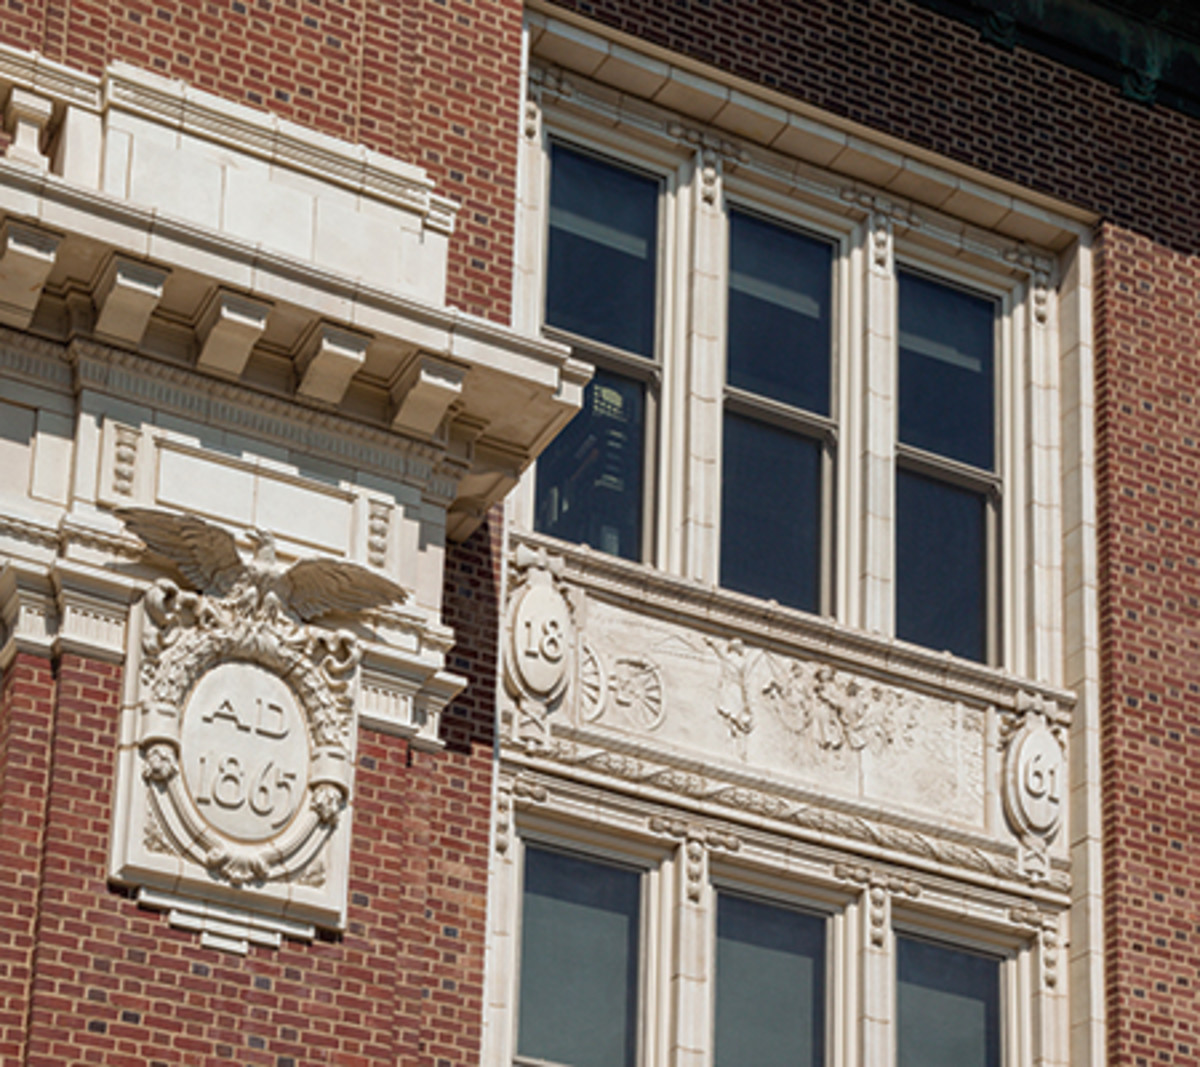 Rather than replace missing portions of the terra-cotta elements and plaques on the exterior, an art conservation approach was used to preserve them. Photo: Photography by © WayneCable.com